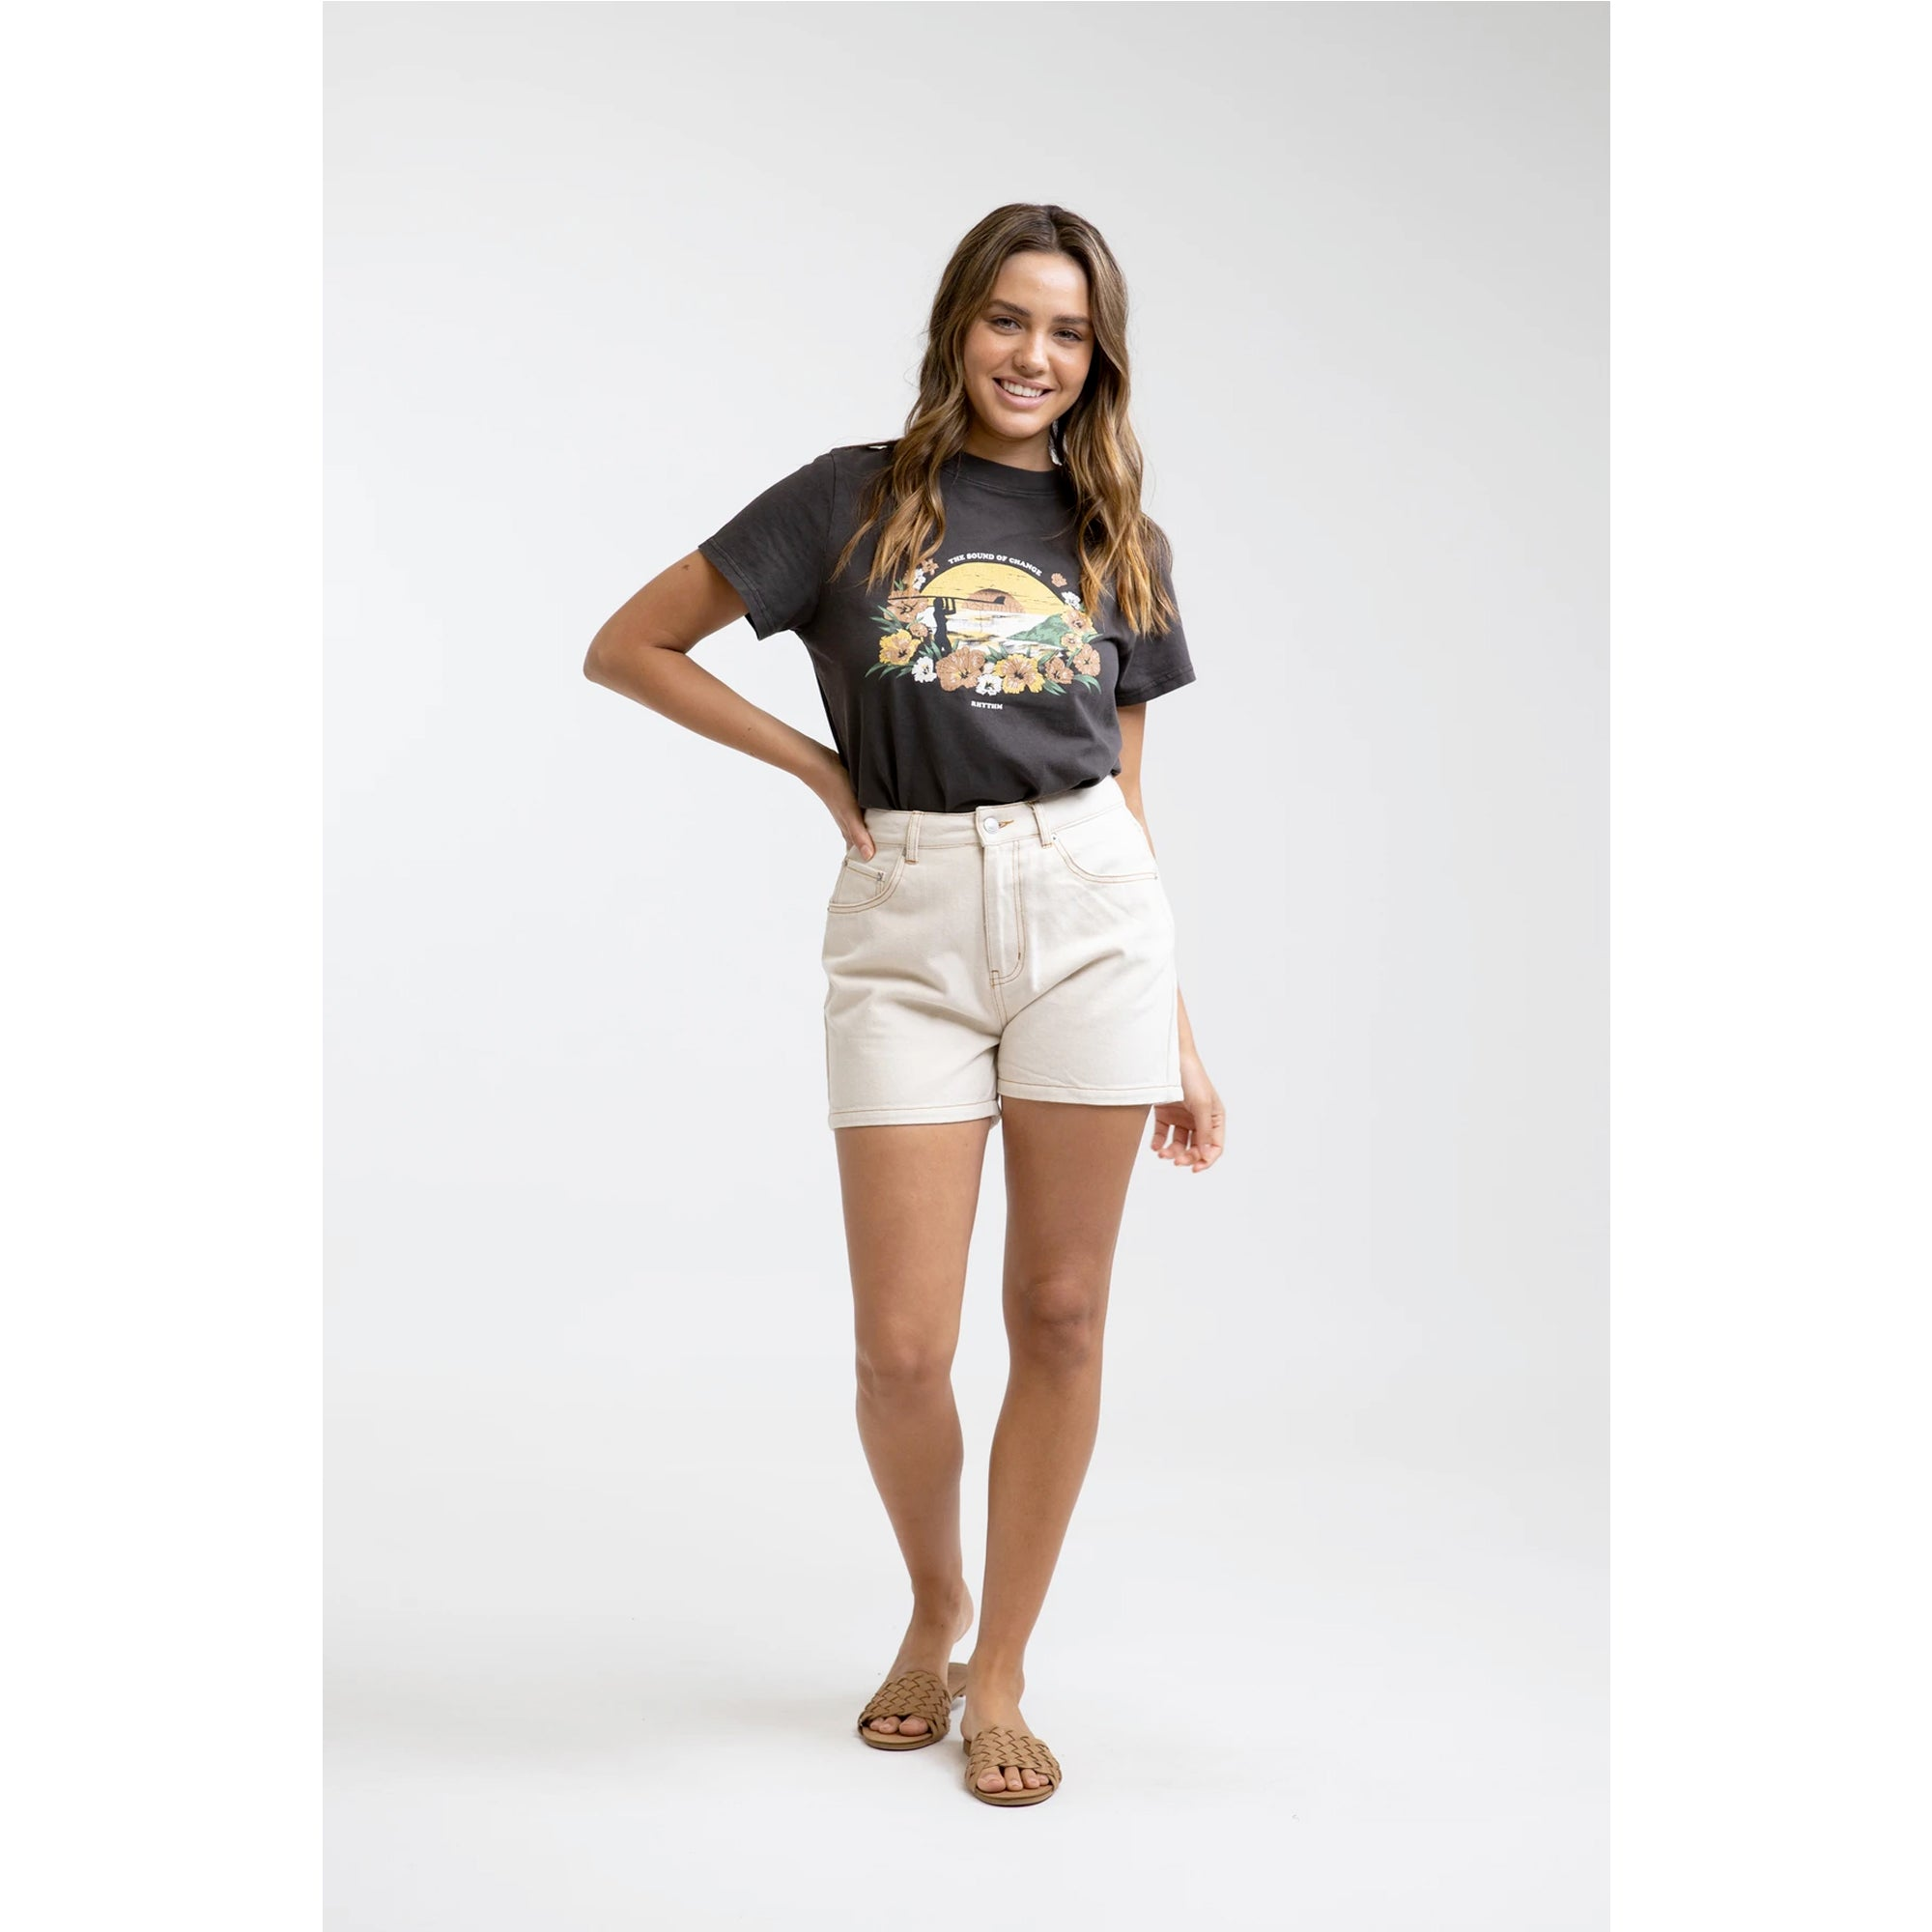 Rhythm Sundown Vintage Women's S/S T-Shirt